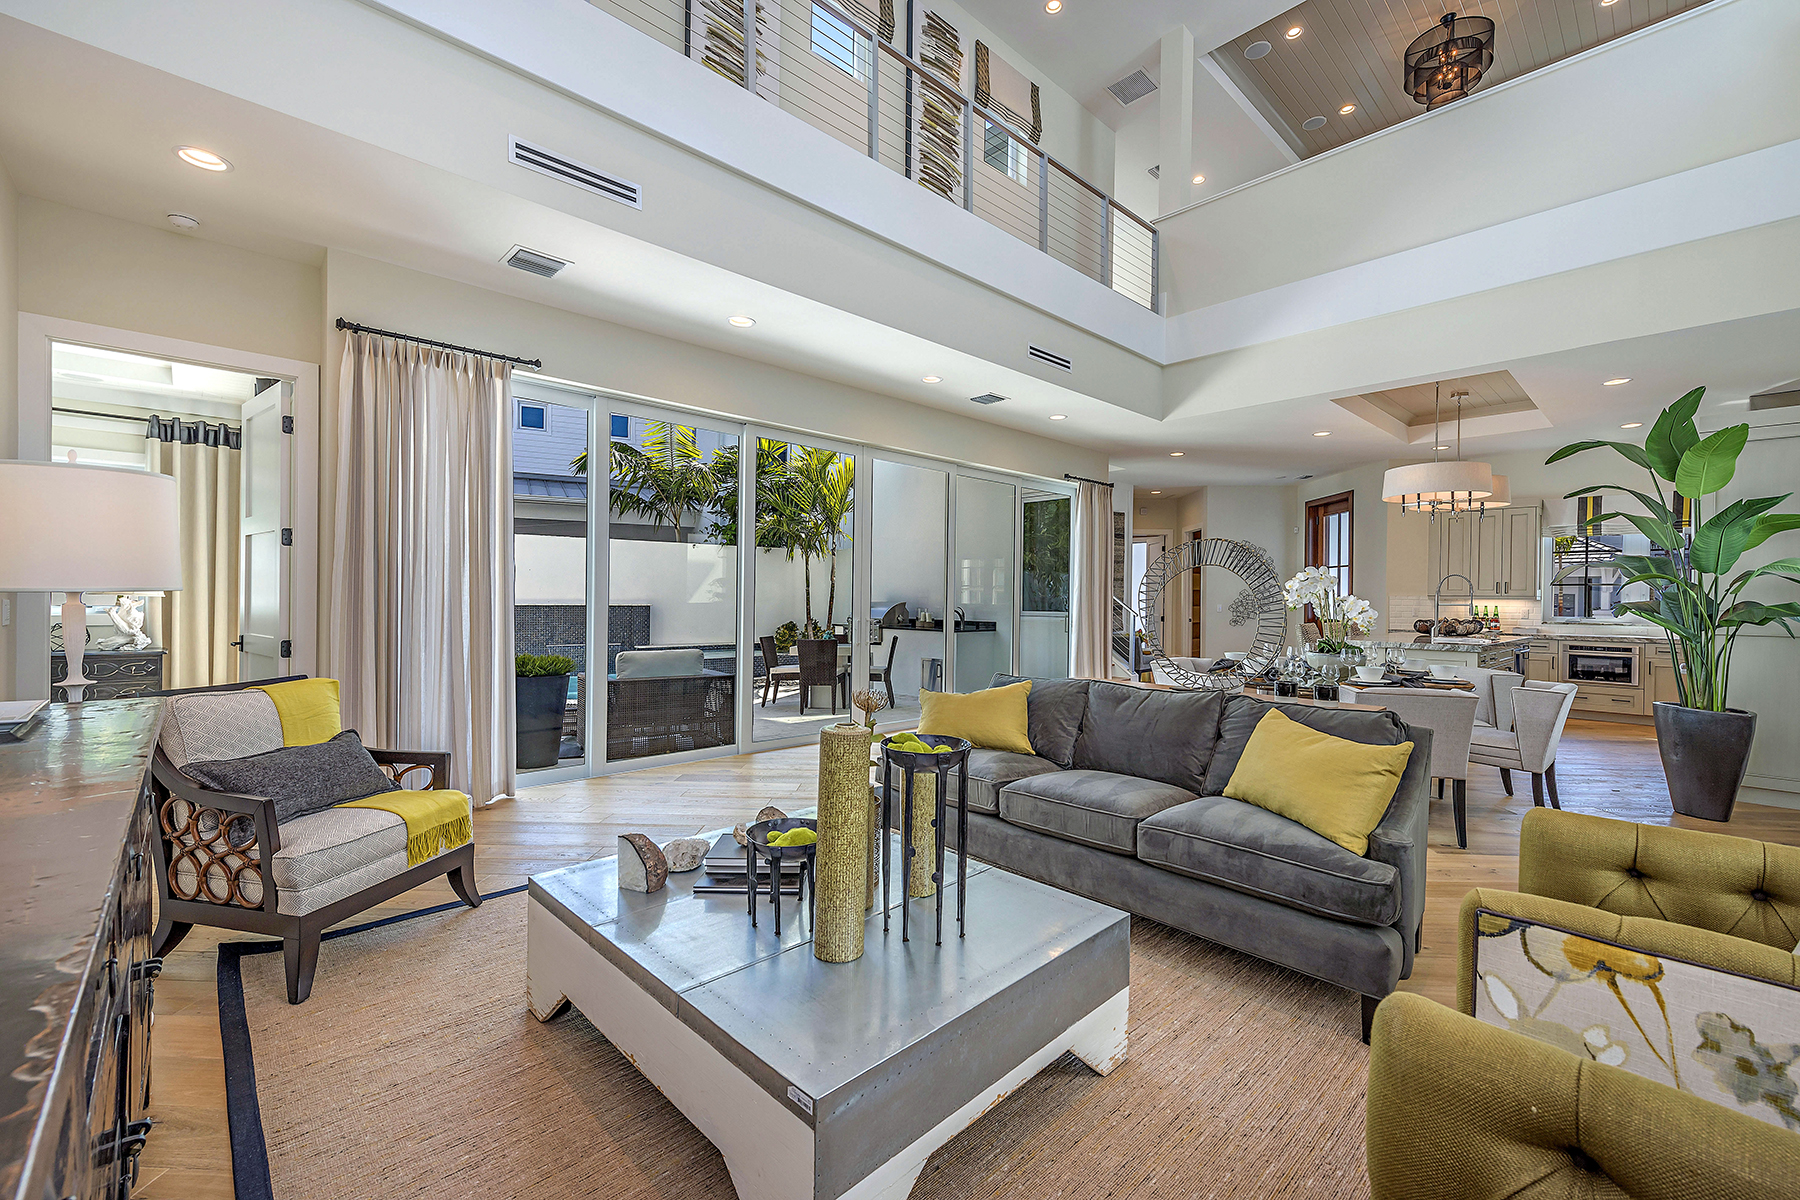 Single Family Home for Sale at RESIDENCES AT MERCATO 9165 Mercato Way Naples, Florida, 34108 United States